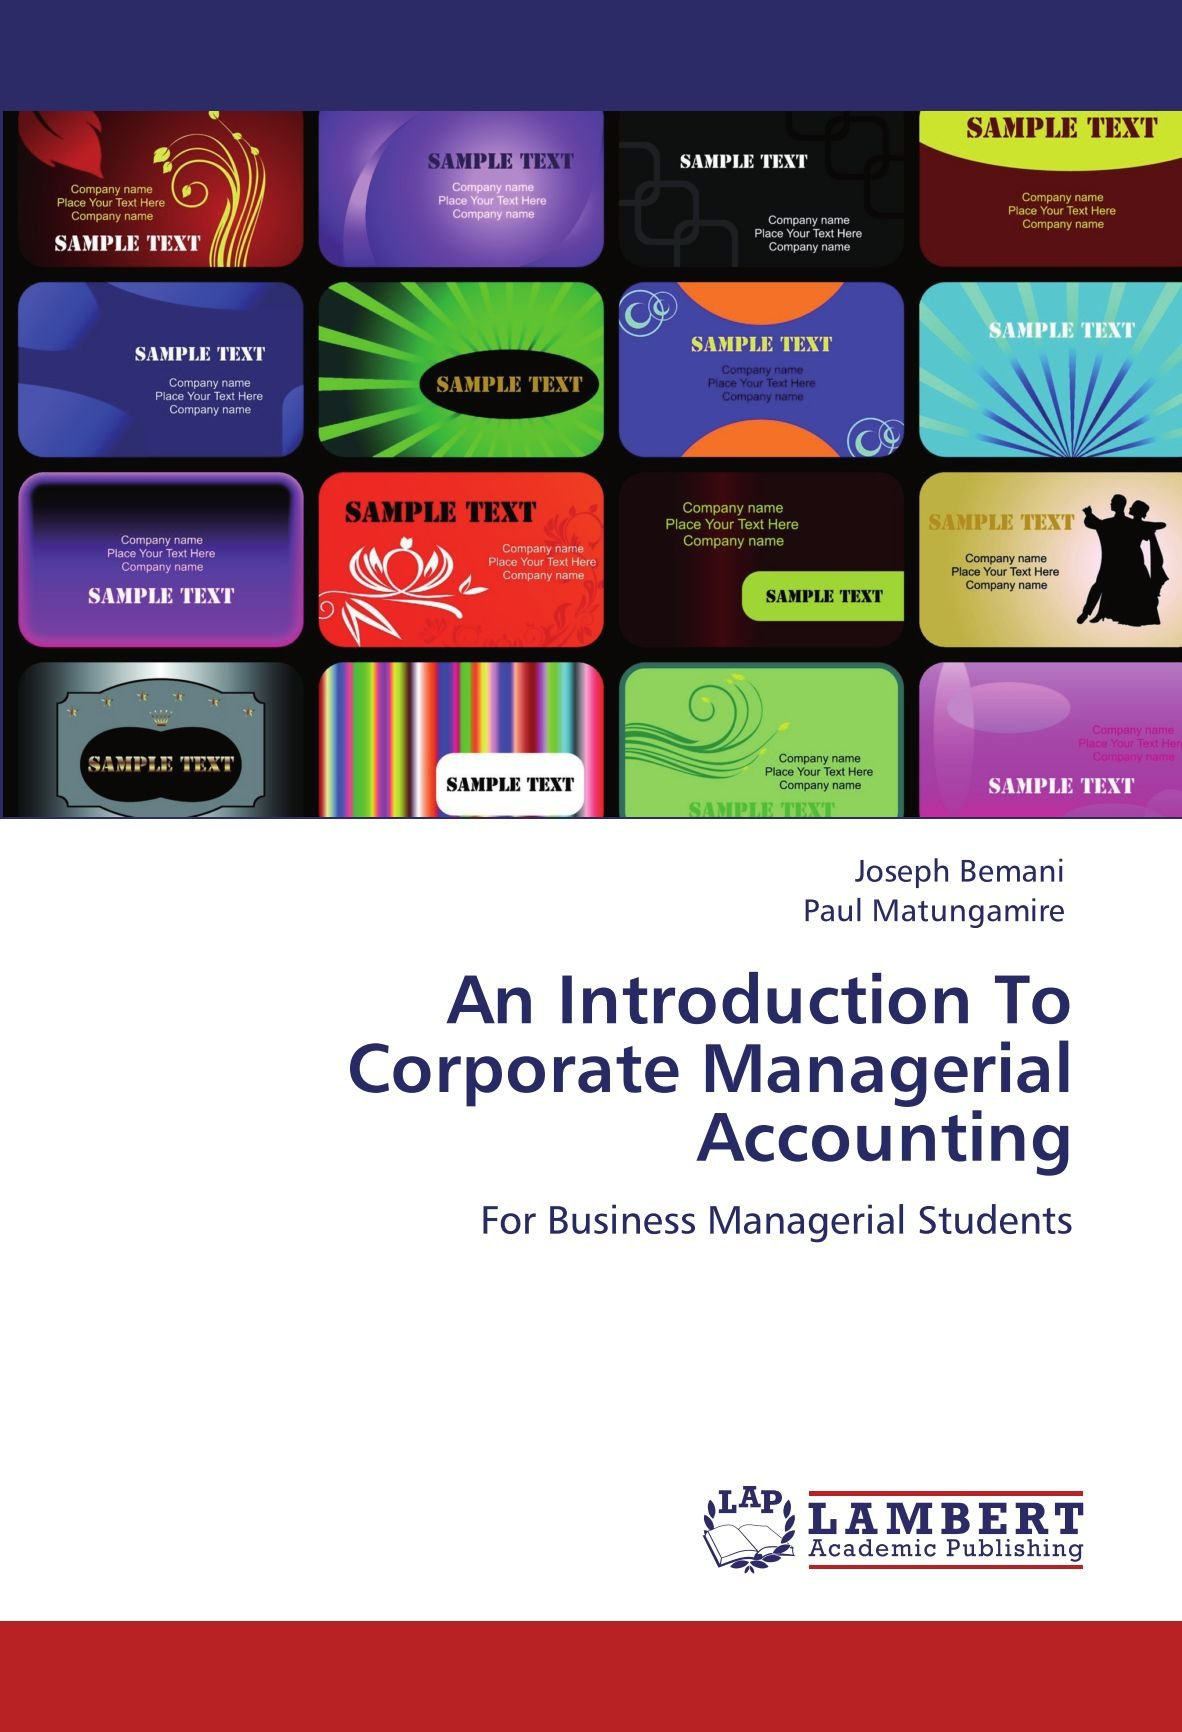 An Introduction To Corporate Managerial Accounting: For Business Managerial Students by Joseph Bemani